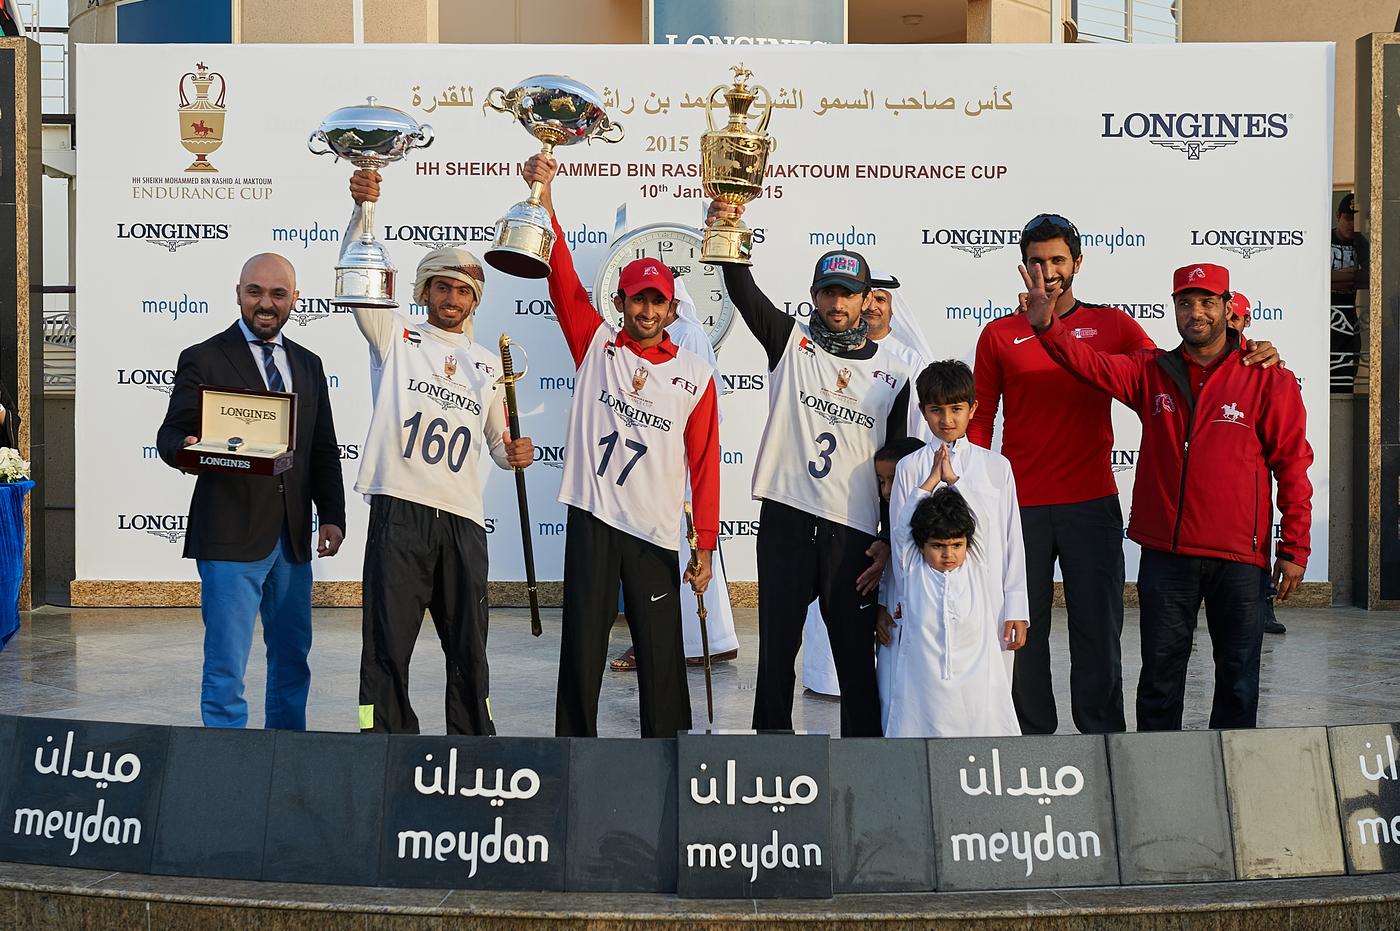 Longines Endurance Event: HH Sheikh Hamdan wins the 2015 Endurance Cup Presented by Longines 1